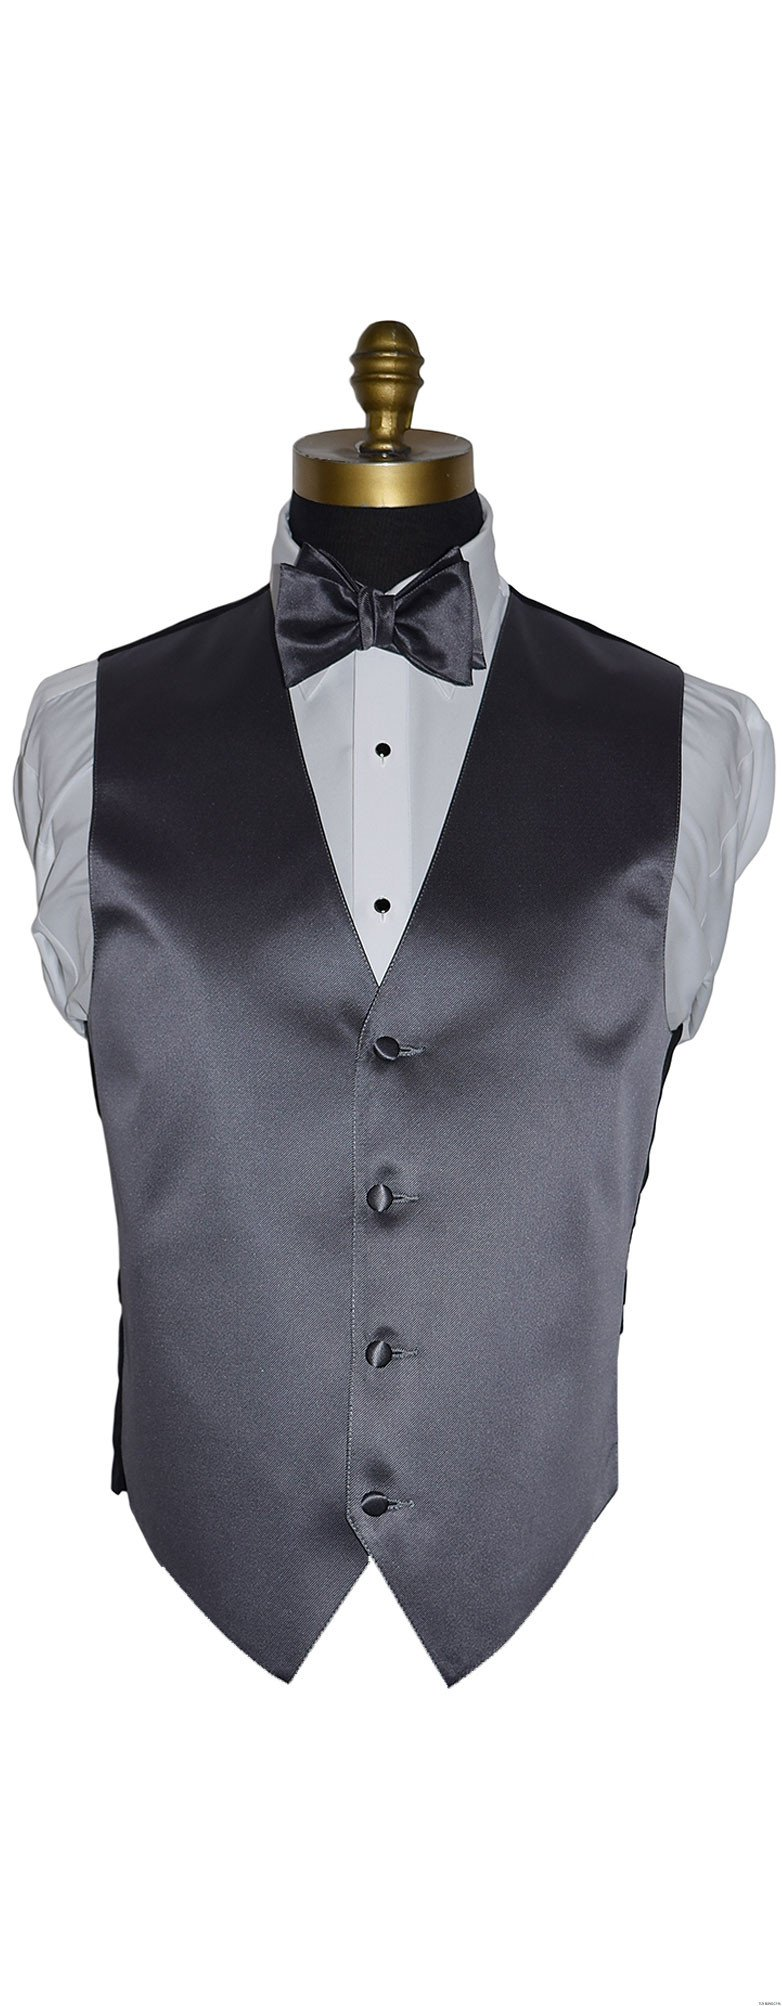 men's and boy's charcoal vest and bowtie by San Miguel Formals